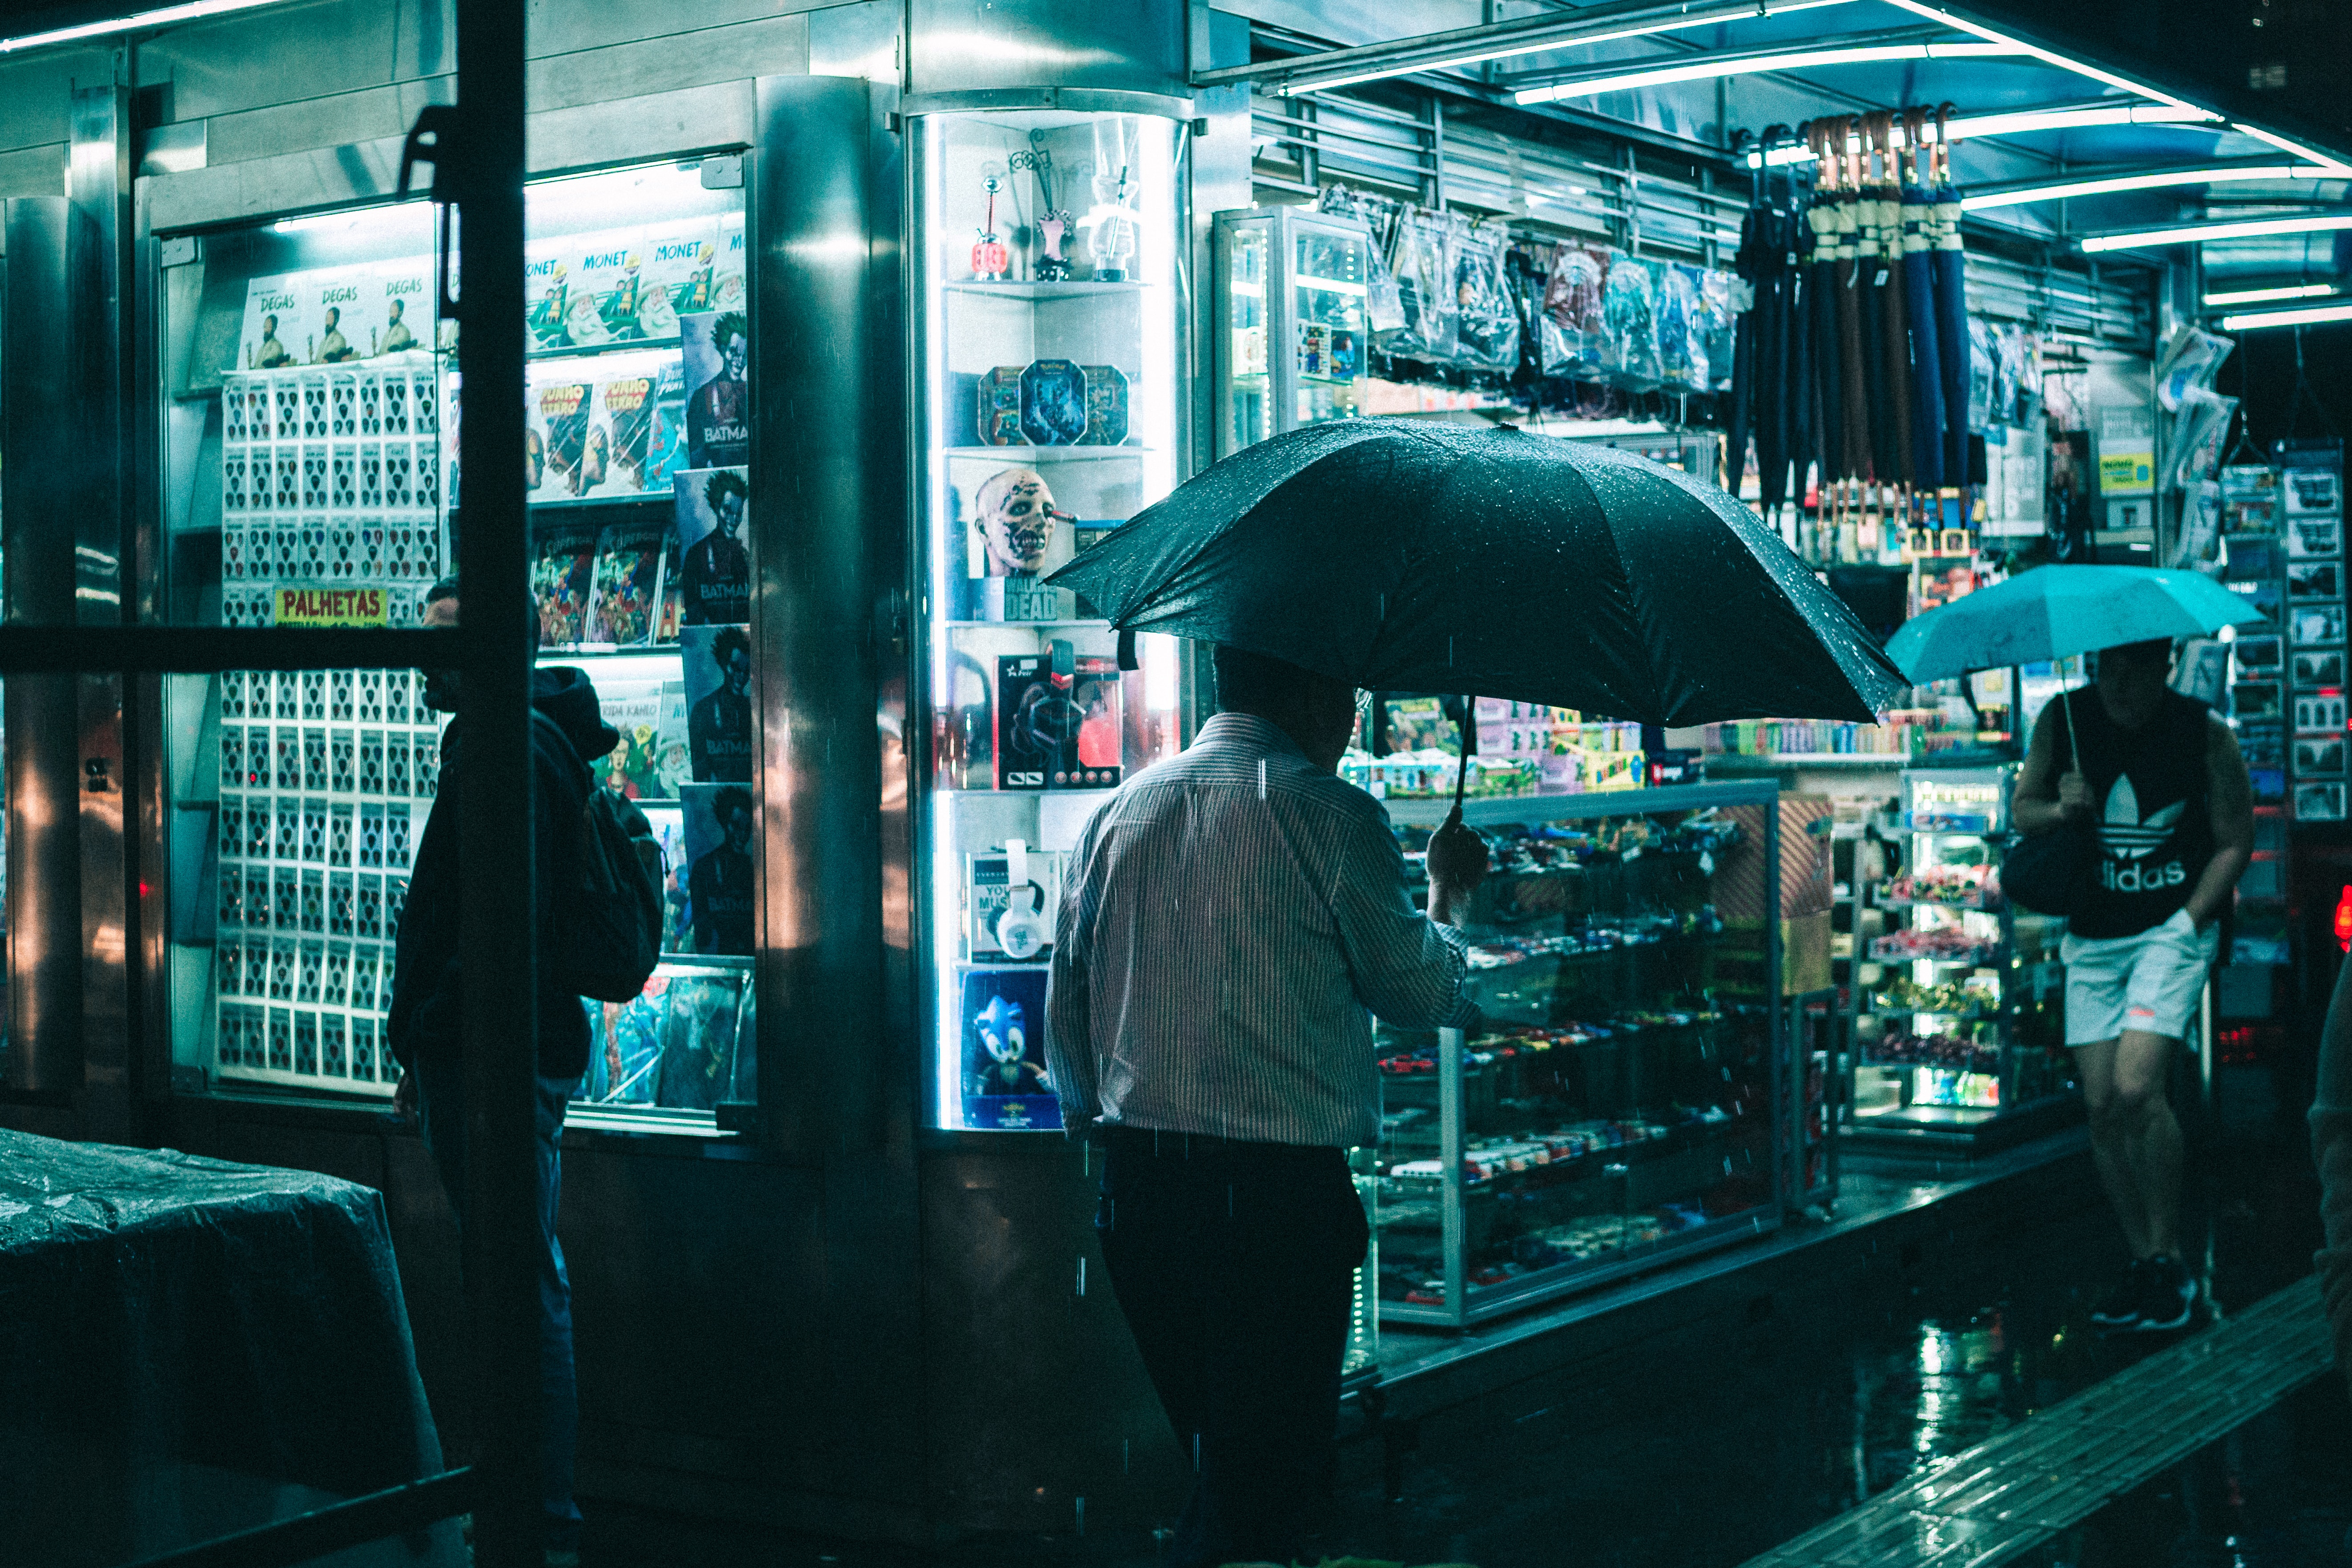 People walking along a sidewalk of a store in the evening in the rain